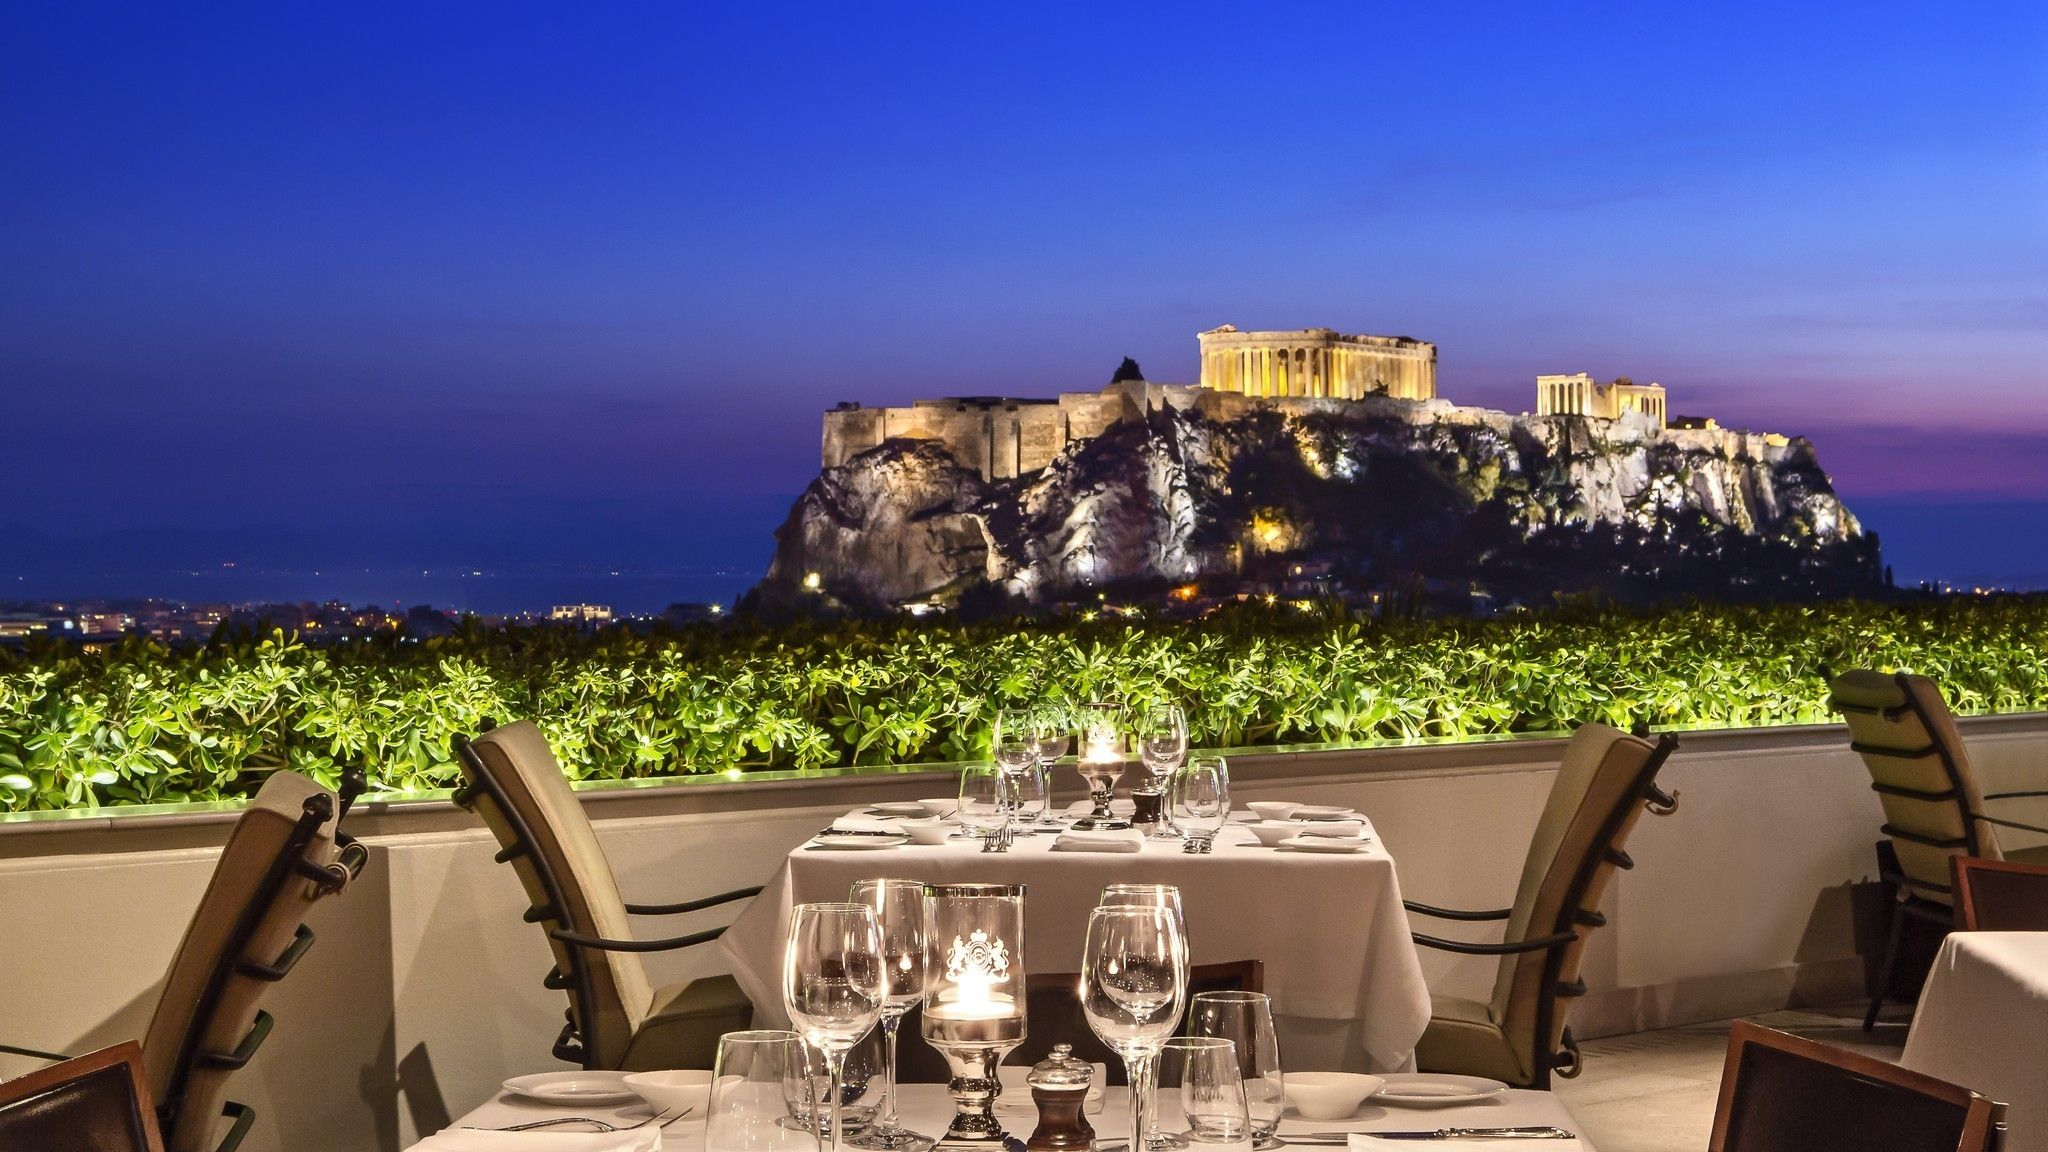 GB Roof Garden Restaurant At Dusk Time With Views To The Acropolis